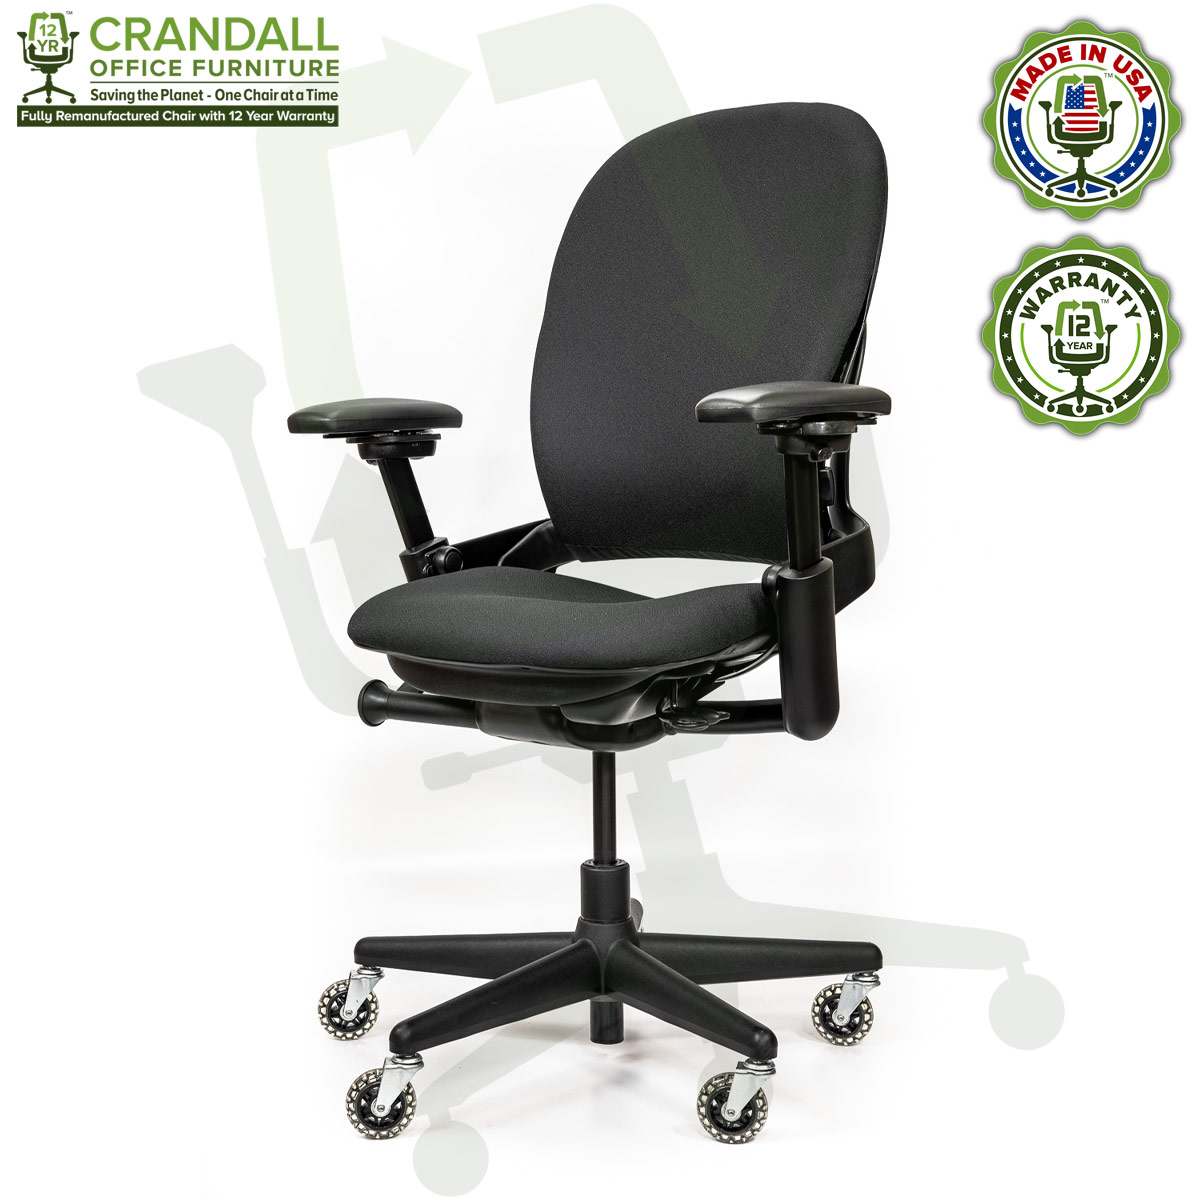 Crandall Office Furniture Remanufactured Steelcase V1 Leap Chair - Highback 002